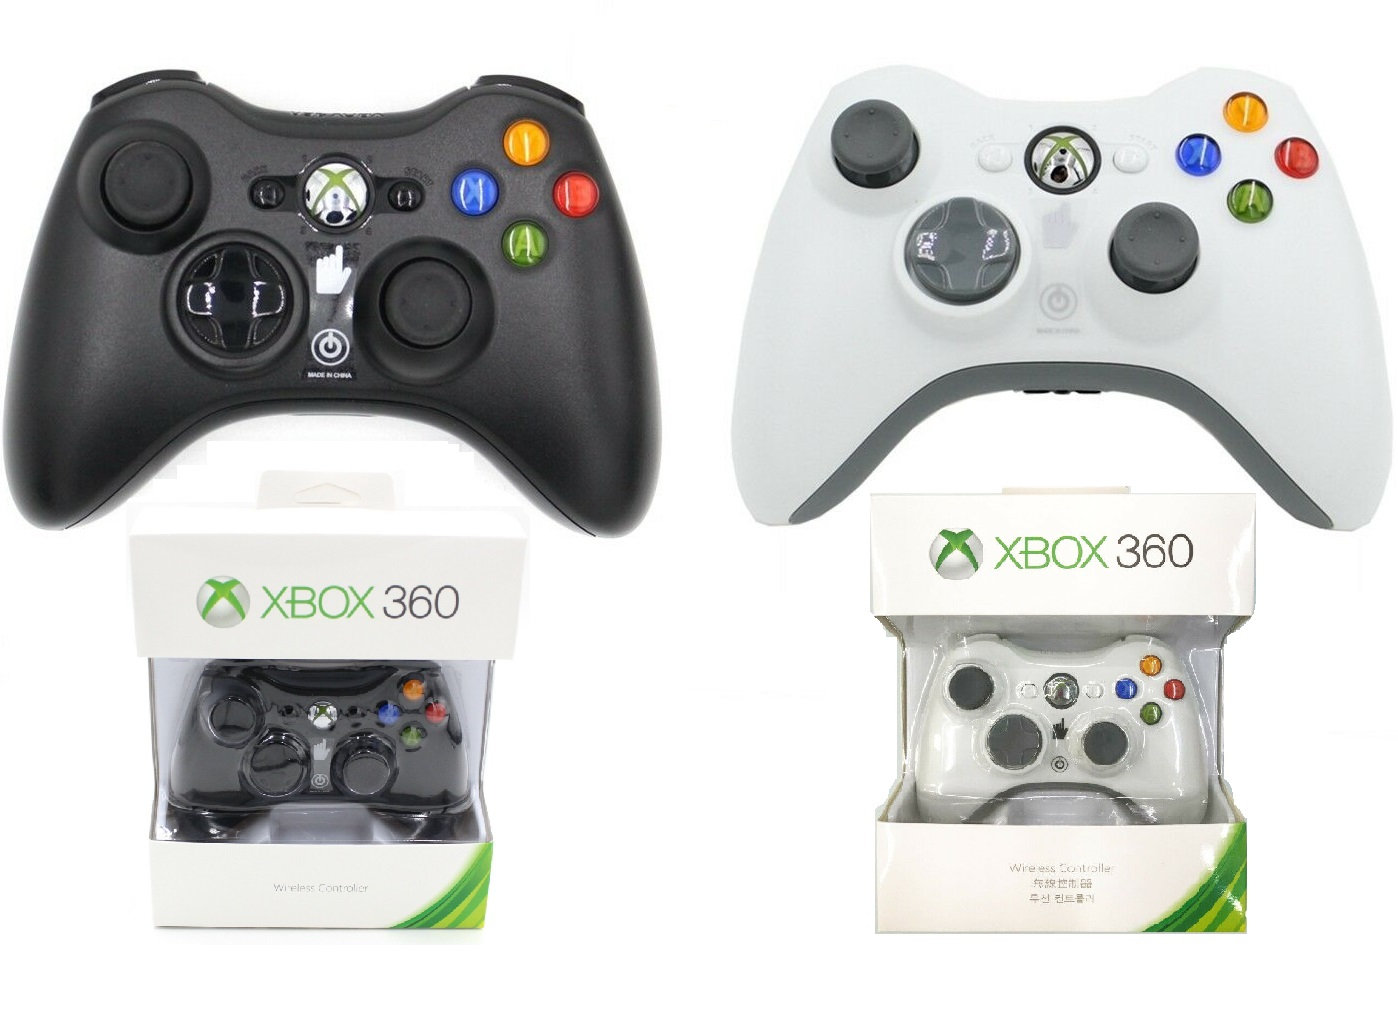 Details About New Blackwhite Xbox 360 Genuine Wireless Game Controller Gamepad For Windows